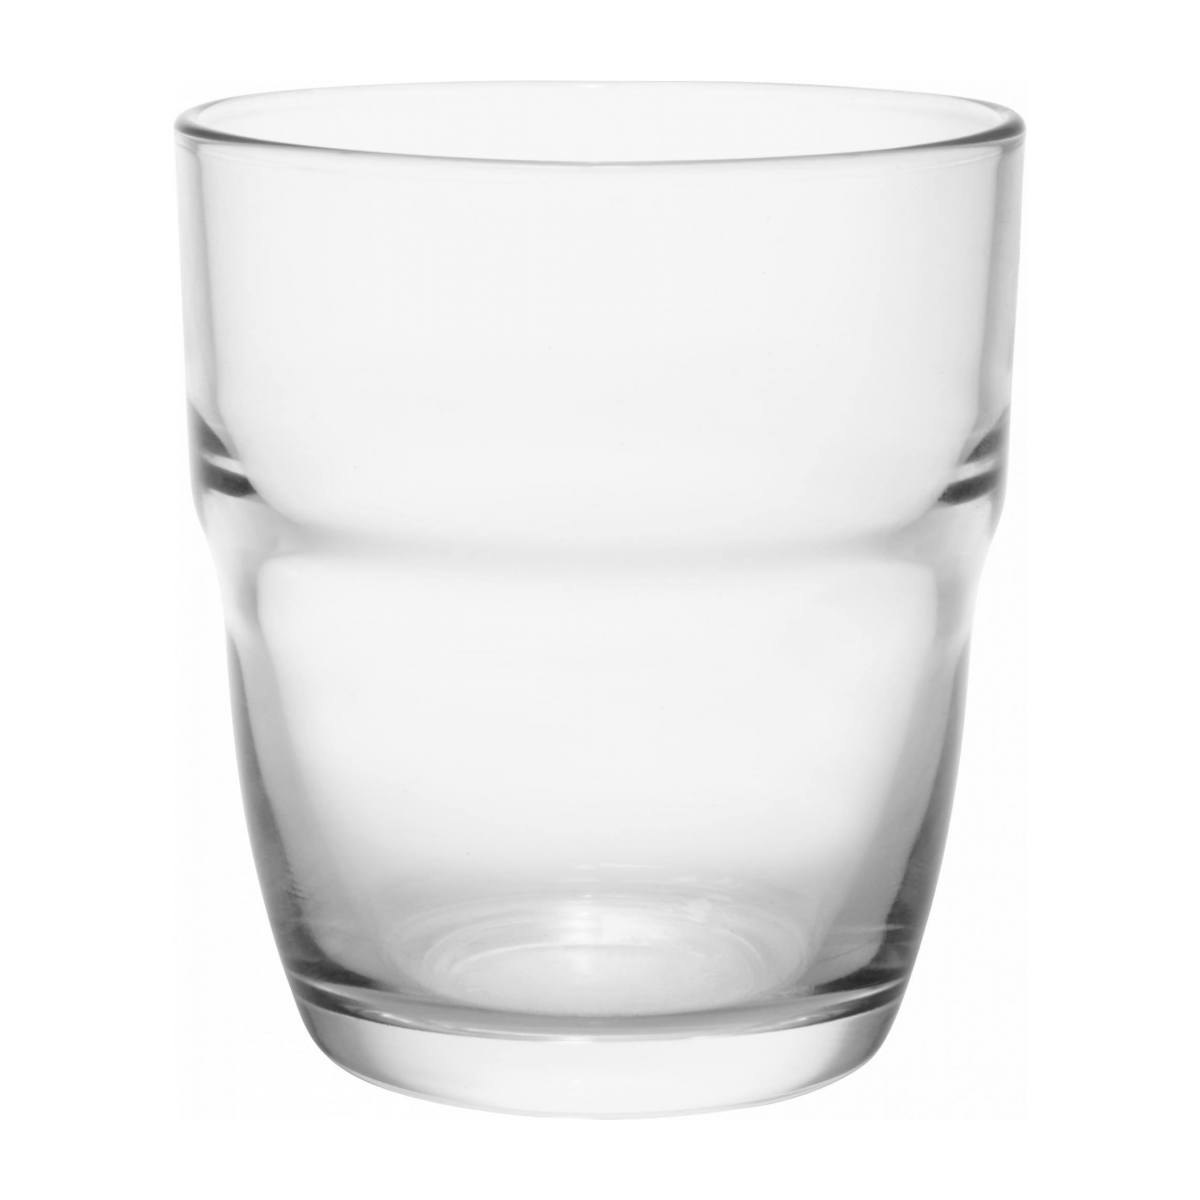 Small tumbler made of glass n°1